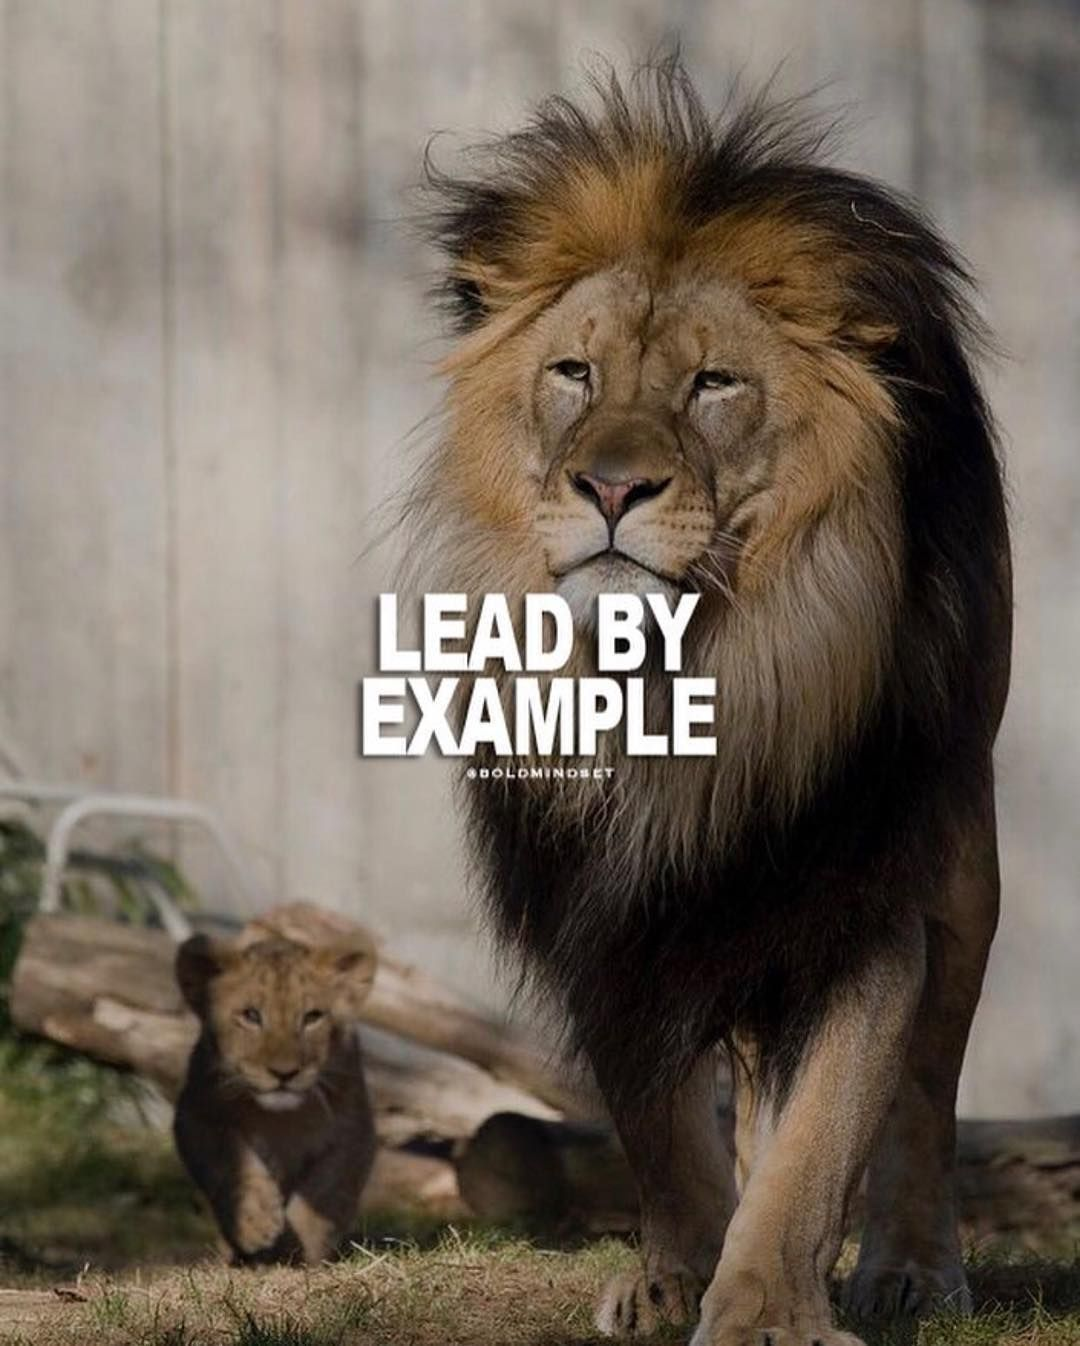 Inspirationalquotes Motivationalquotes Positivevibes Positivequotes Positiveenergy Inspirationdaily Life Lion Quotes Warrior Quotes Be An Example Quotes